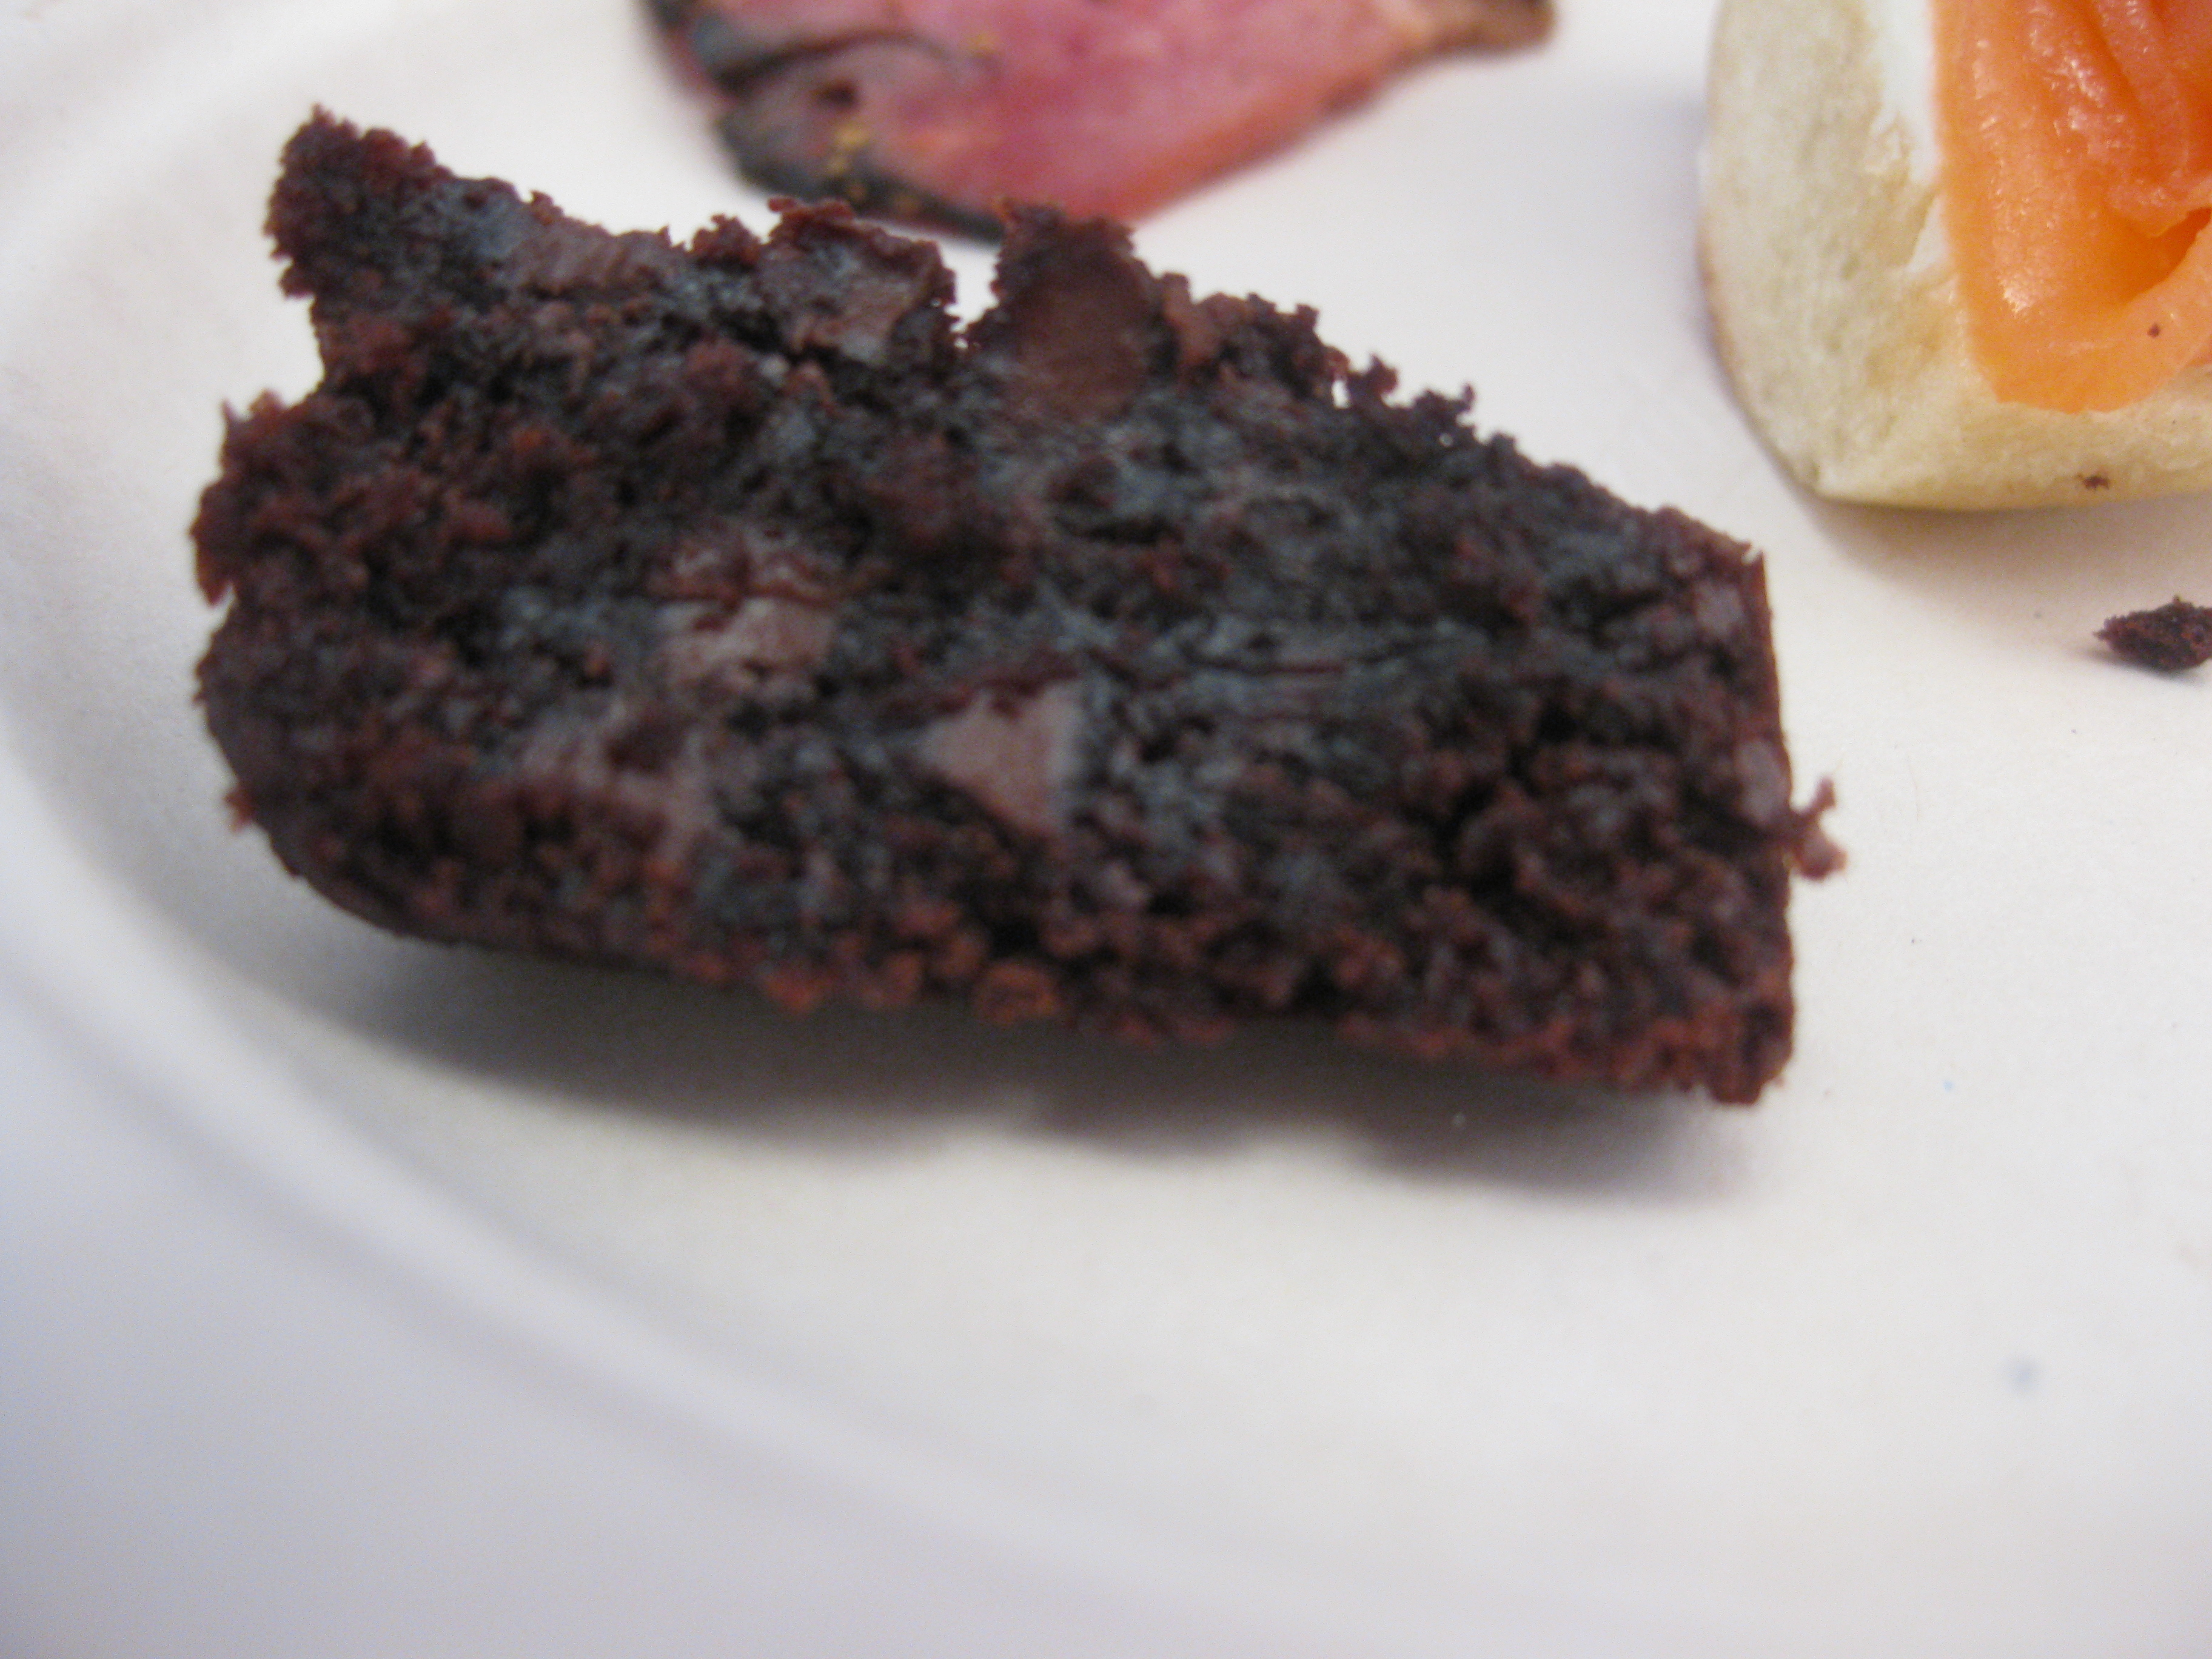 Chocolate cake was paired with a late-harvest Viogner from Lodi.